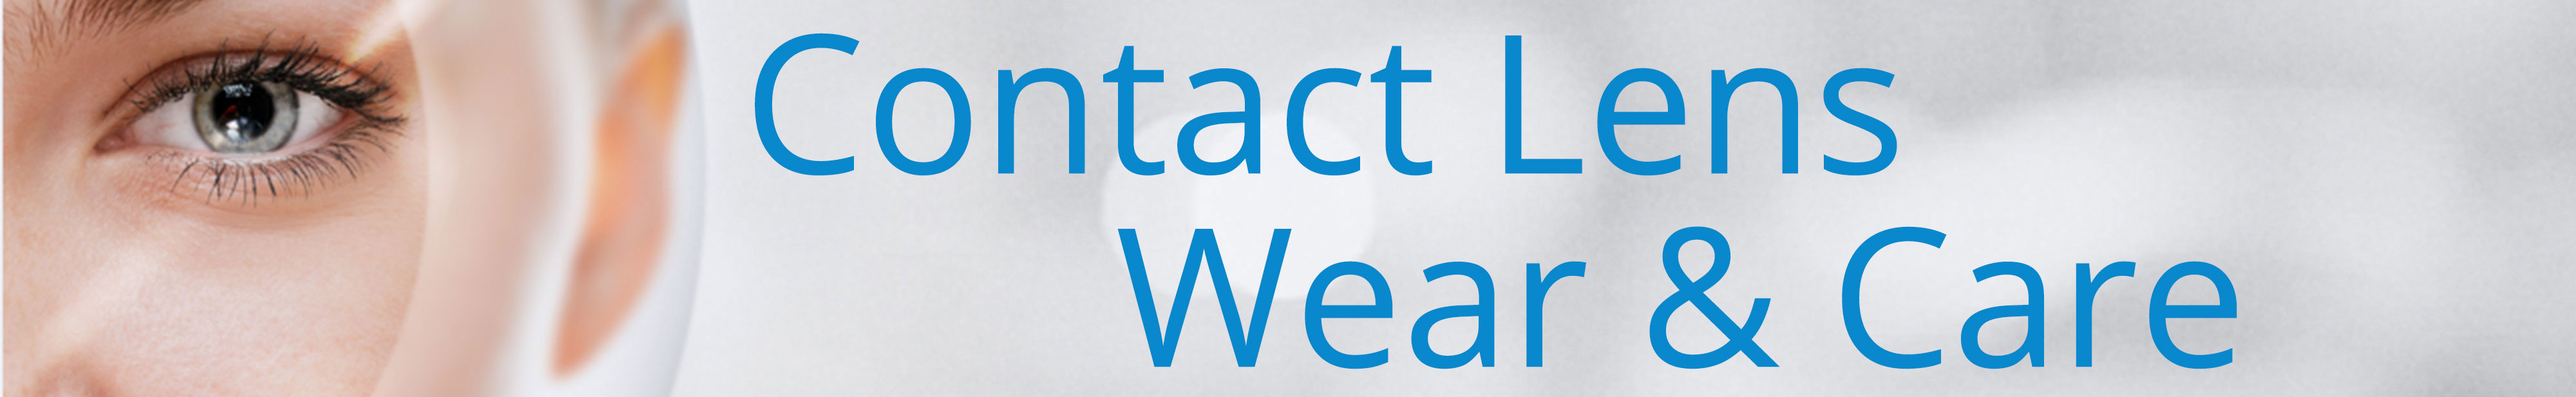 Contact Lens Wear and Care Image